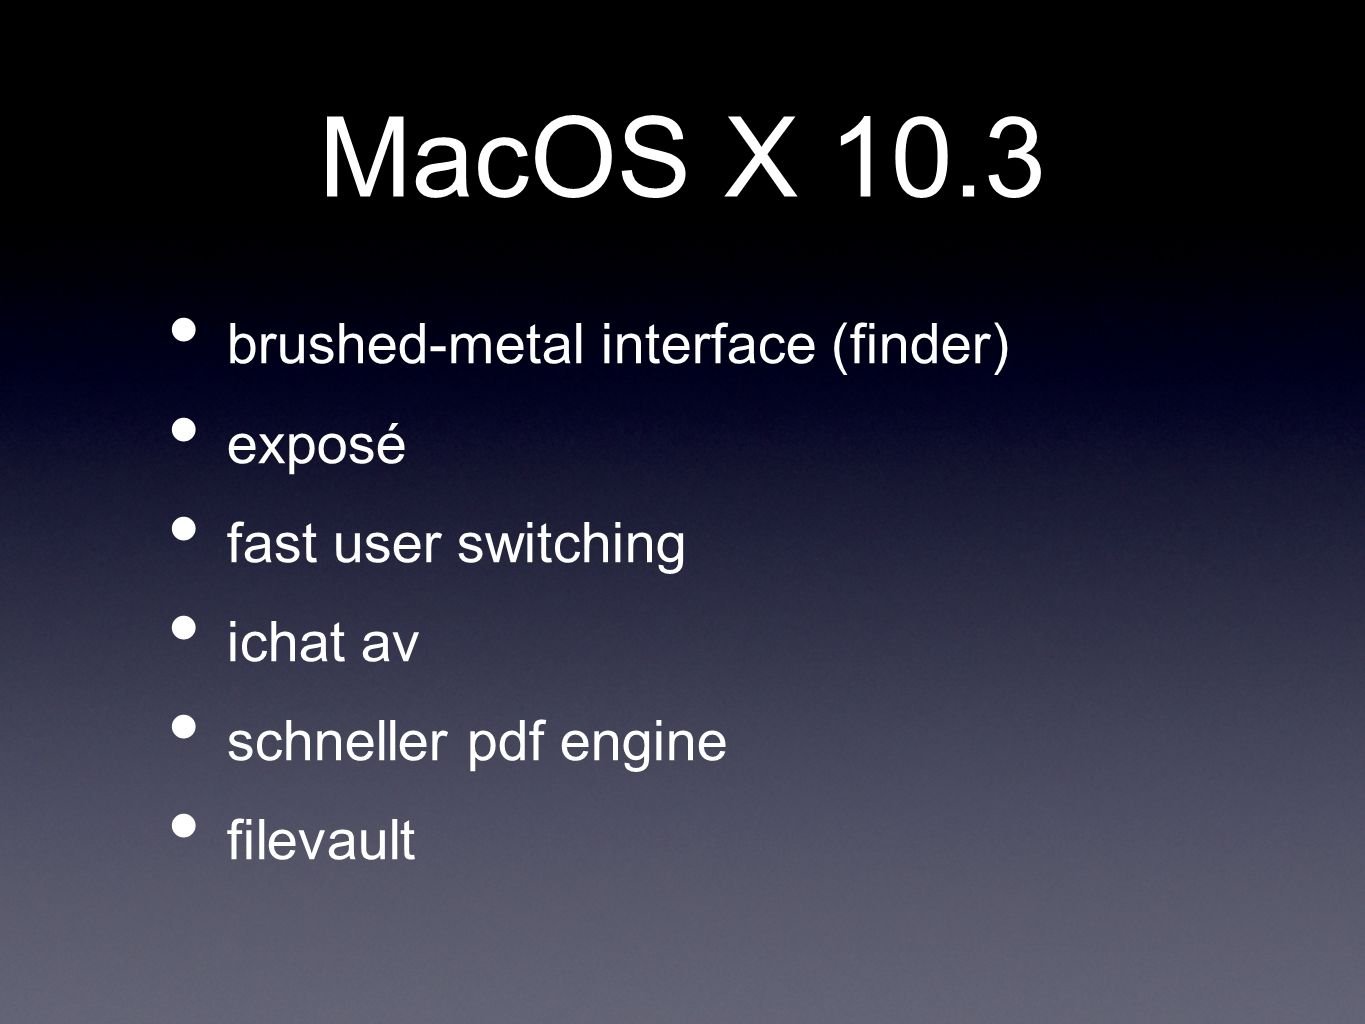 MacOS X 10.3 brushed-metal interface (finder) exposé